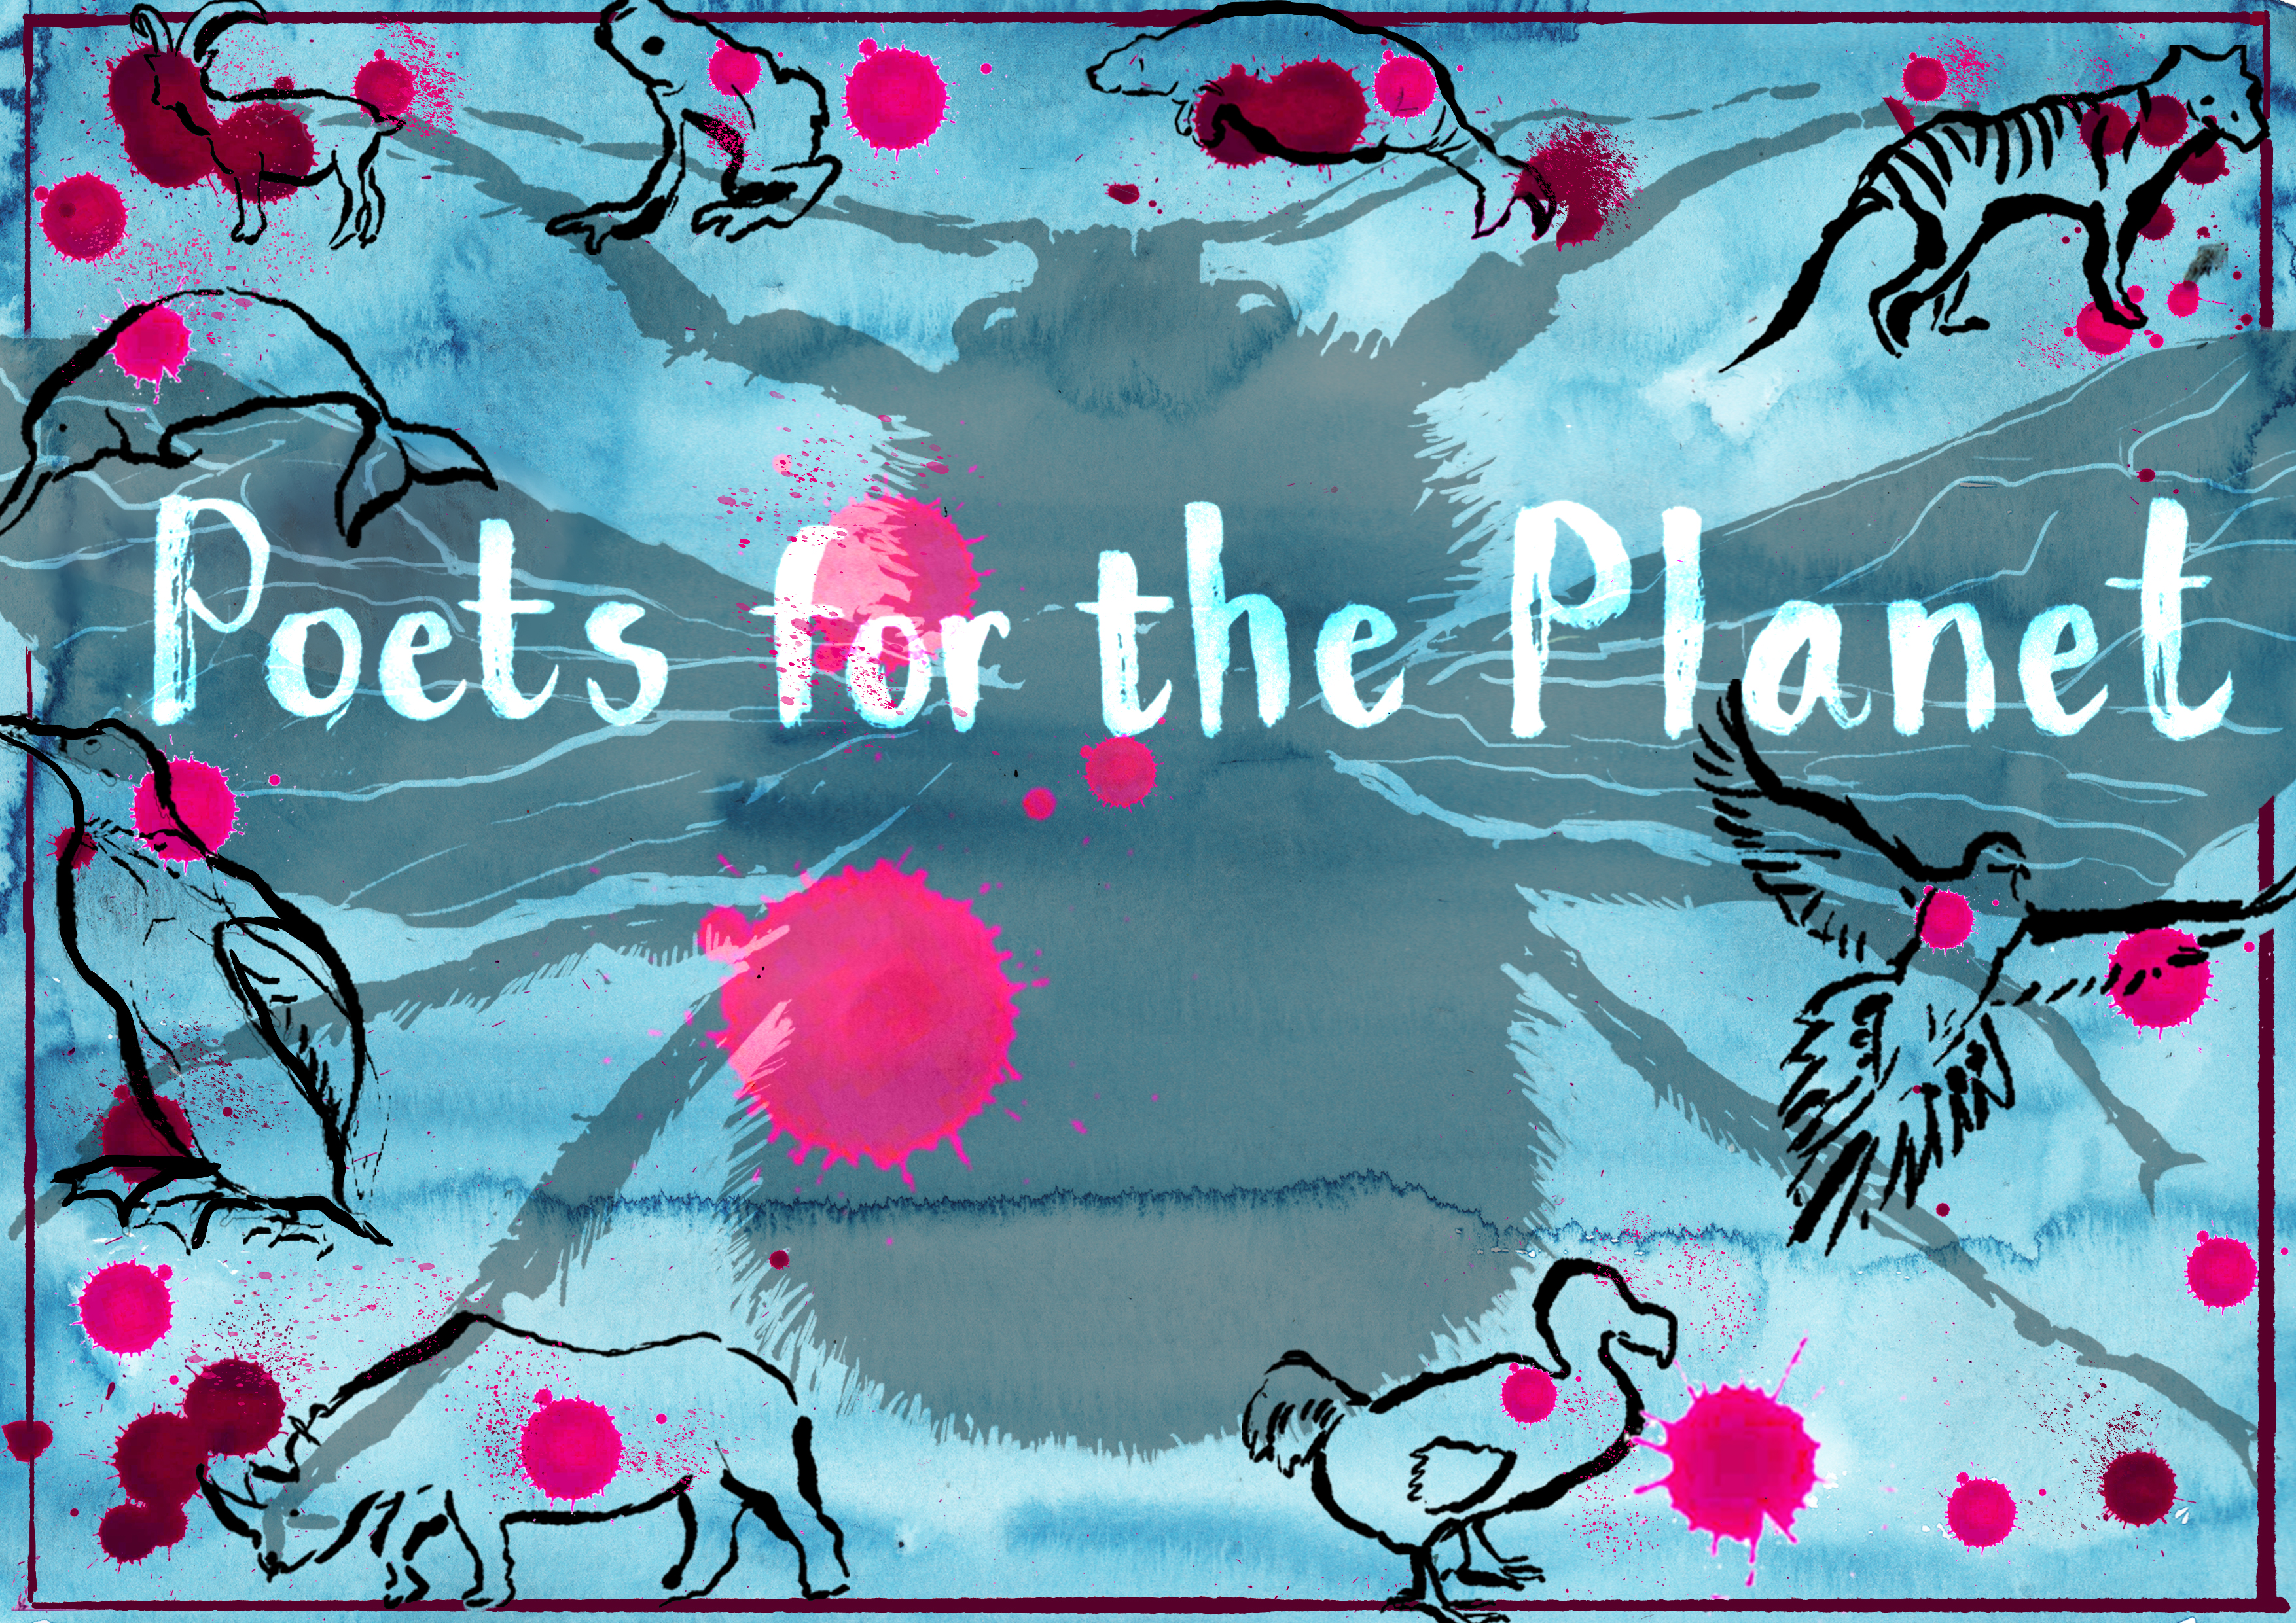 Verse Aid: Poems for the Earth - all-day poem-a-thon (8 February 2020 - 11AM to 6PM)